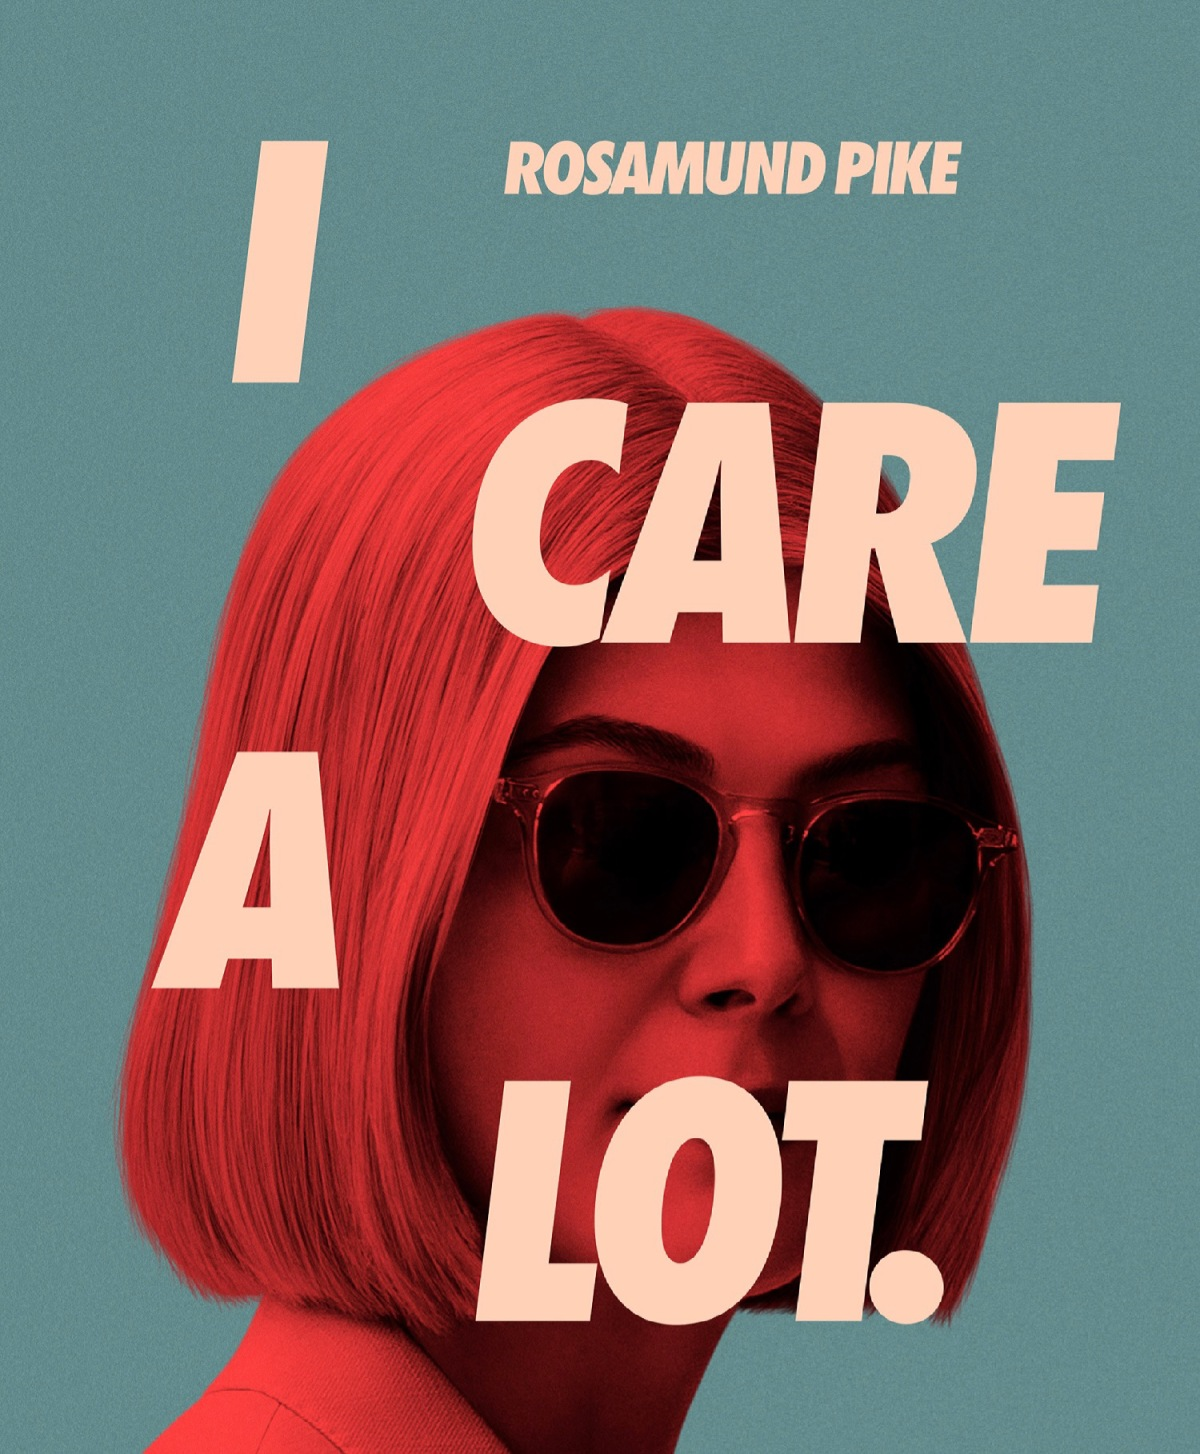 """I Care a Lot"": One-Sentence Review"